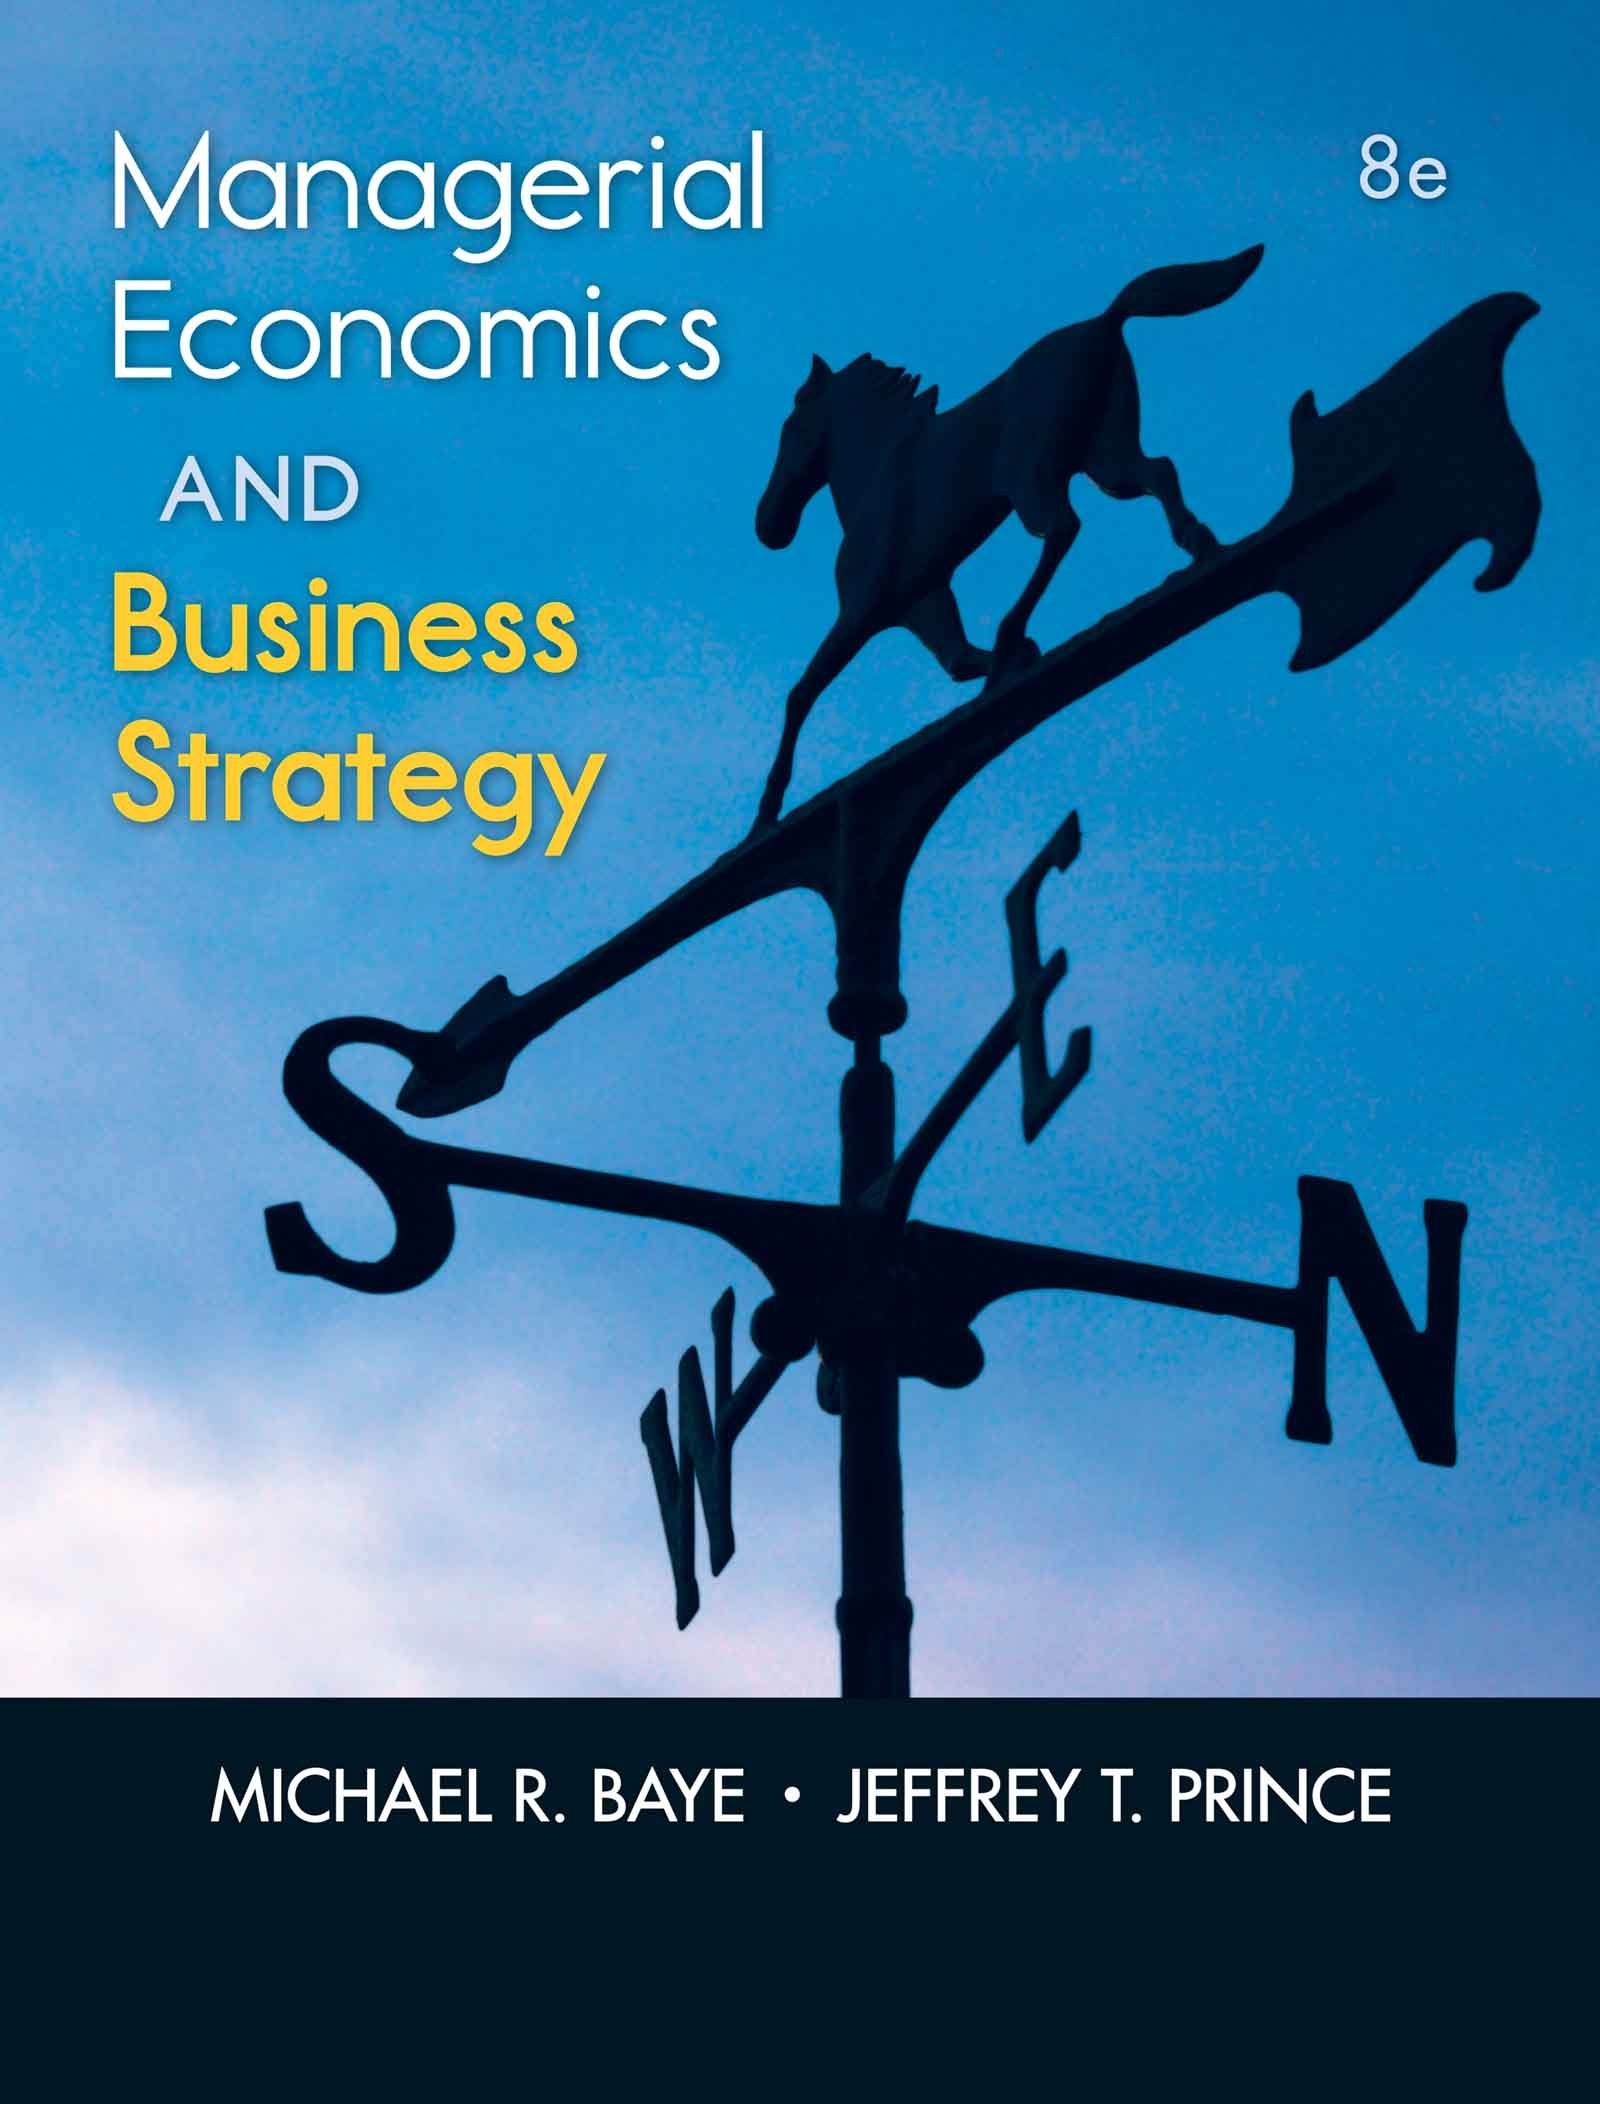 Managerial Economics & Business Strategy, 8th edition (McGraw-Hill Economics)